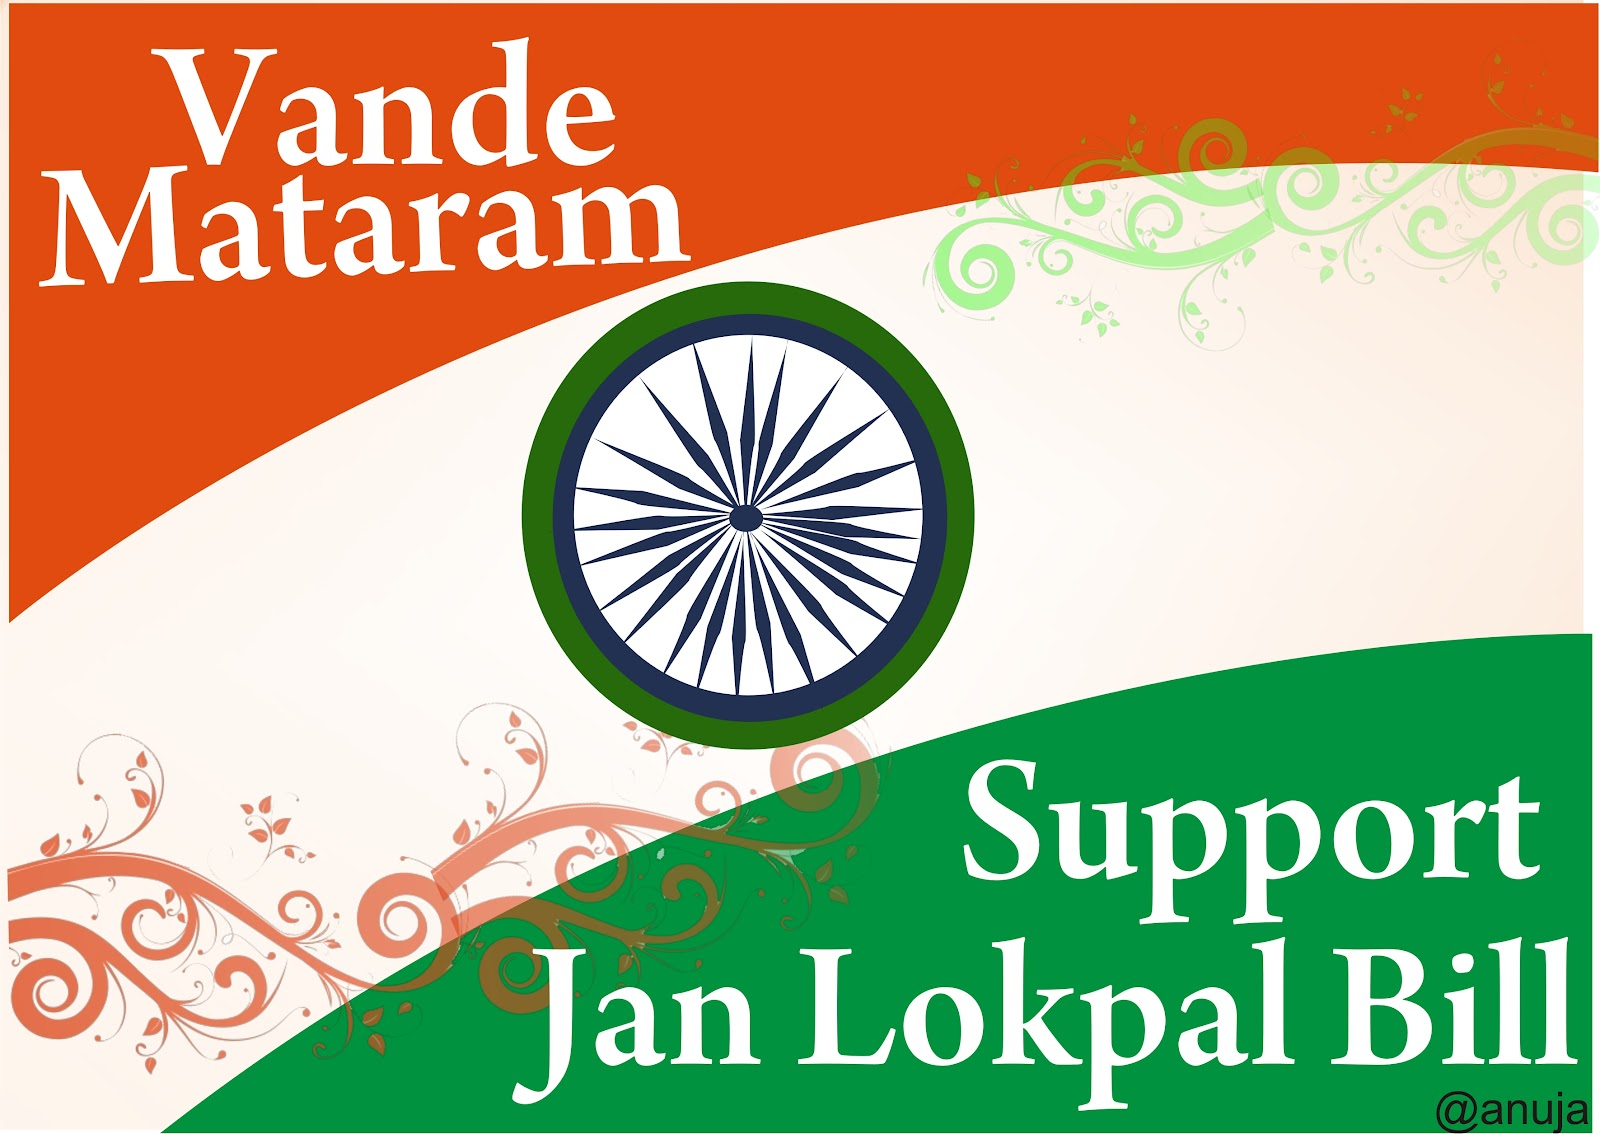 the lokpal bill In april 2011, social crusader anna hazare went on a fast to insist on the passing of the lokpal bill the main aim of the lokpal bill is to provide a better legal framework to work against corrupt officials across different public organizations and in the government.